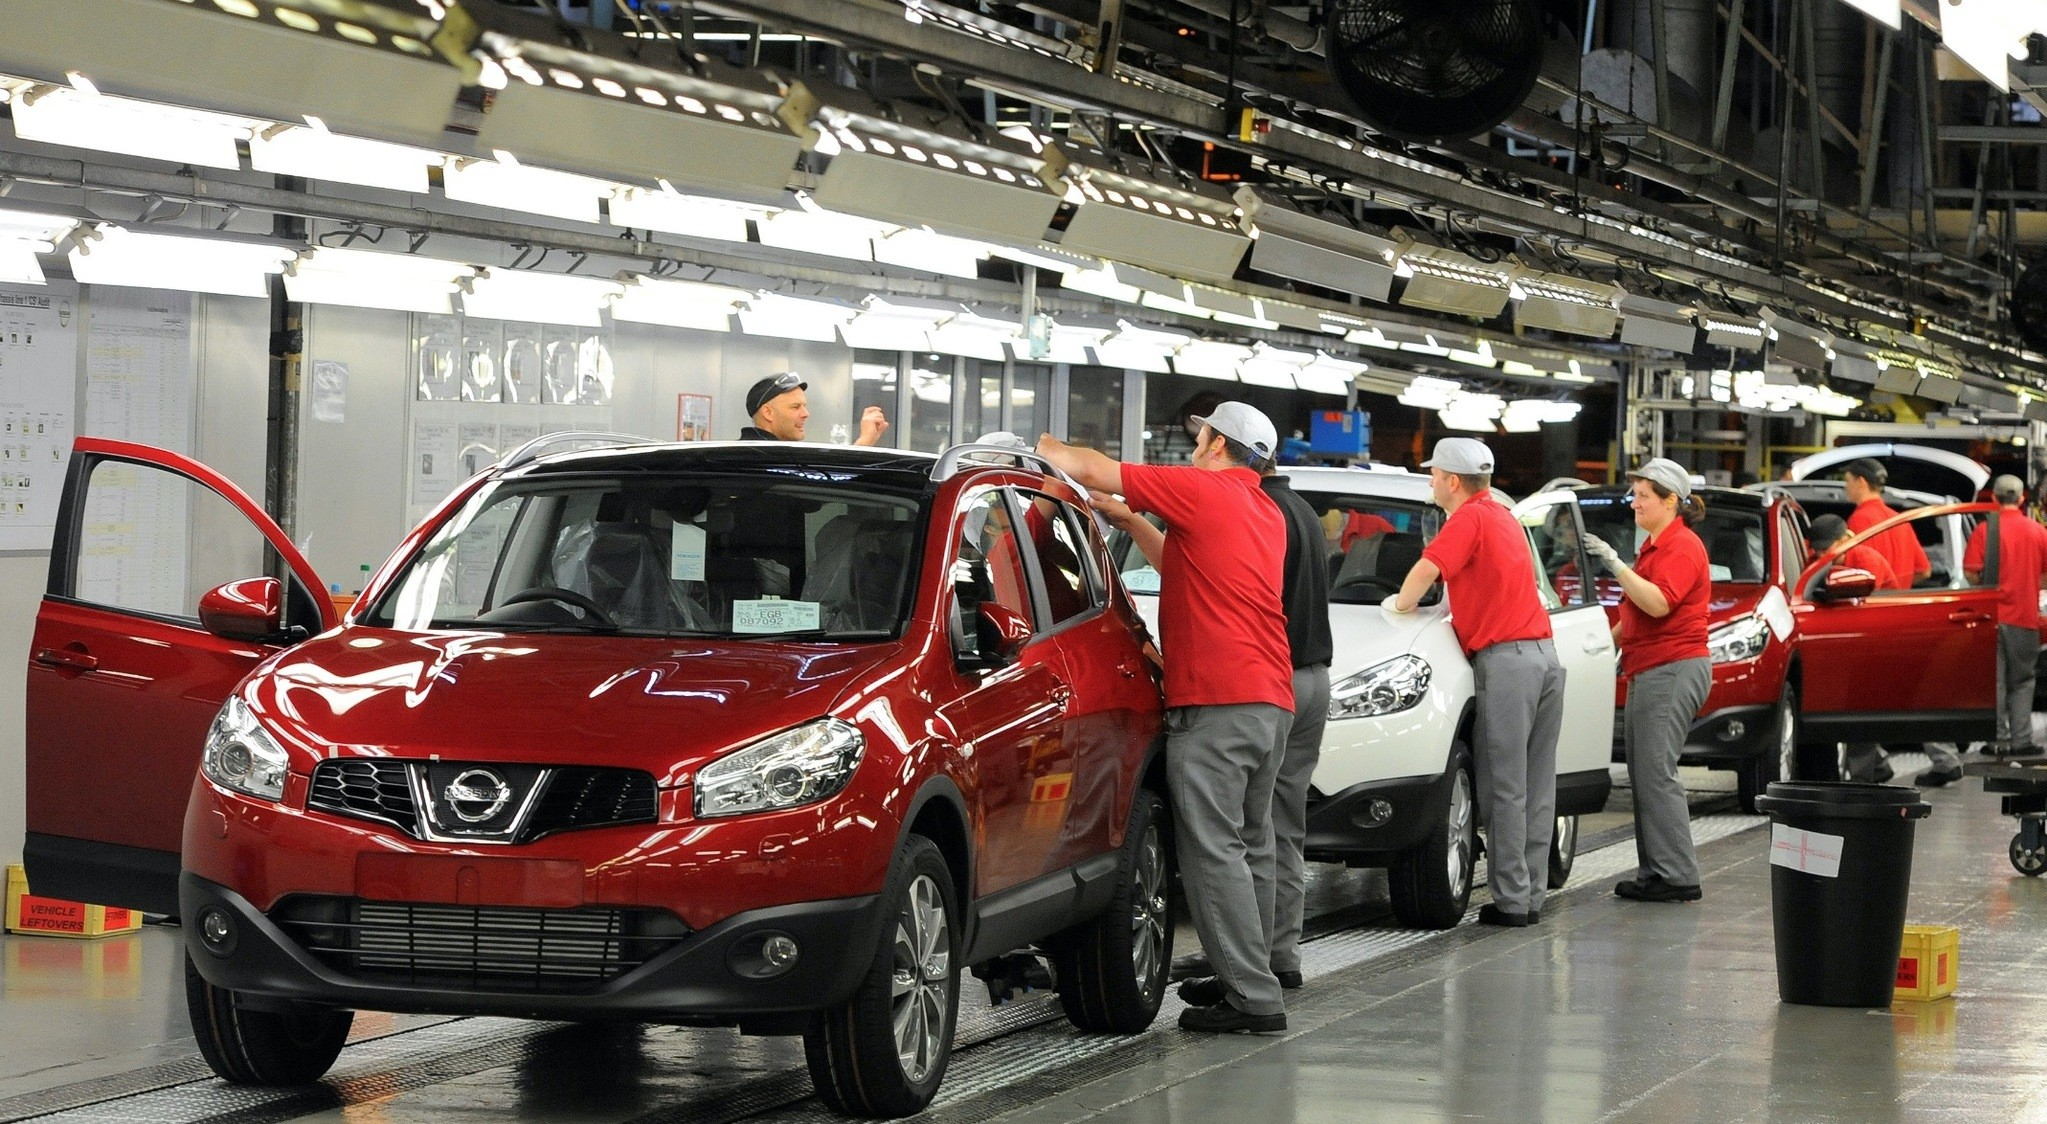 A worker is seen completing final checks on the production line at the Nissan car plant in Sunderland, northern England, June 24, 2010.